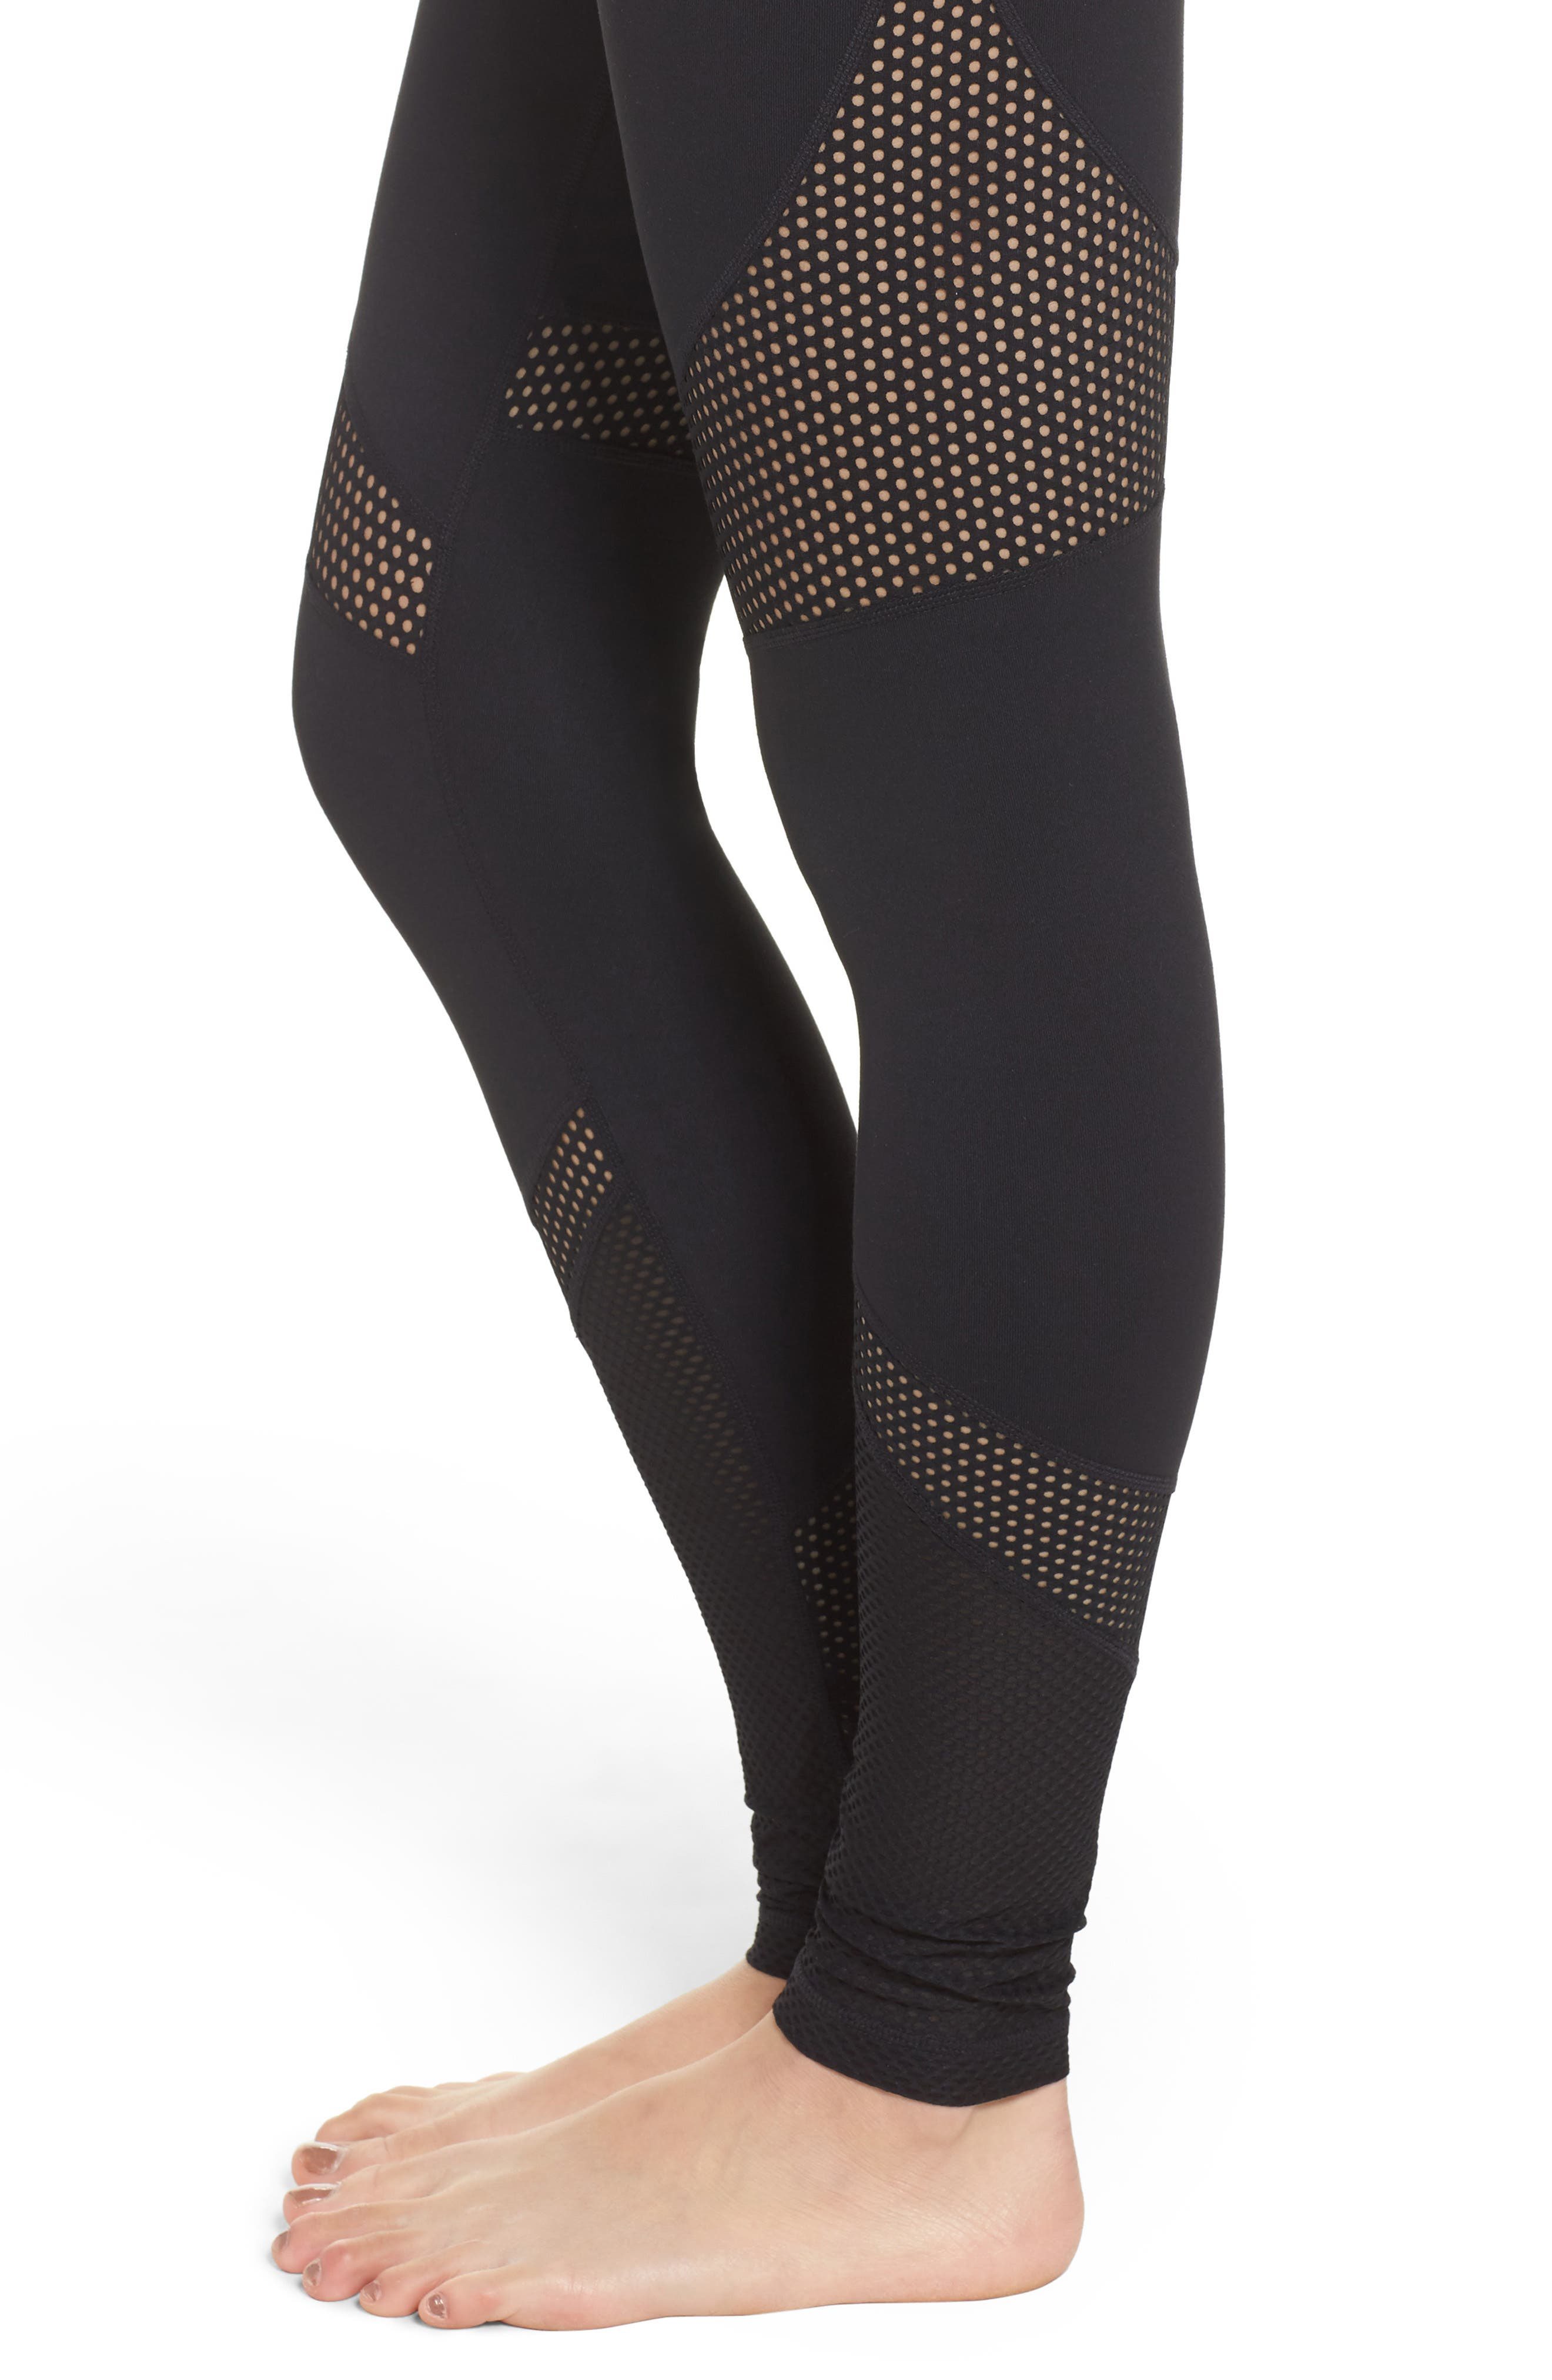 Out of Bounds High Waist Leggings,                             Alternate thumbnail 4, color,                             001